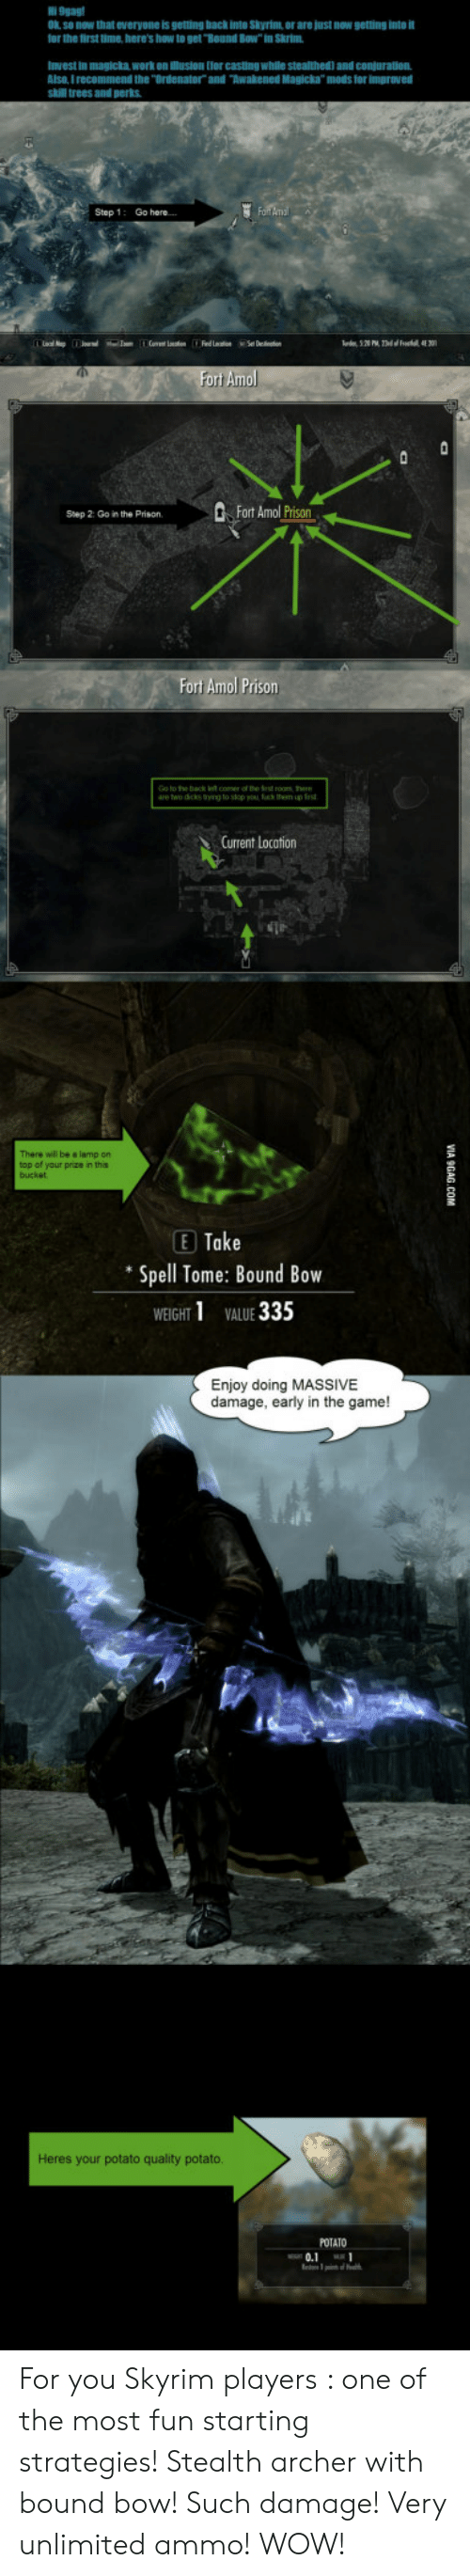 """9gag, Skyrim, and The Game: 9gag  K se now that everyone is getting back inte Skyrim, or are just now getting into  or the first time here's how to get Bound Bow"""" in Skrim  Invest in magicka work on ilusion [or casting while stealthed) and conjuration  Alse, I recommend the Ordenator and Awakened Magicka mods for improved  skill trees and perks  Step 1  Go here  fort Amol  2 0o a the PrisonFort Amol Prison  Fort Amol Prison  are two dicks tying to sop  Fuck he ups  Current Location  There wll be a lamp on  op of your prize in this  E Take  Spell Tome: Bound Bow  WEGHT1 VALUE 335  Enjoy doing MASSIVE  damage, early in the game!  Heres your potato quality potato  POTATO  0.1 For you Skyrim players : one of the most fun starting strategies! Stealth archer with bound bow! Such damage! Very unlimited ammo! WOW!"""